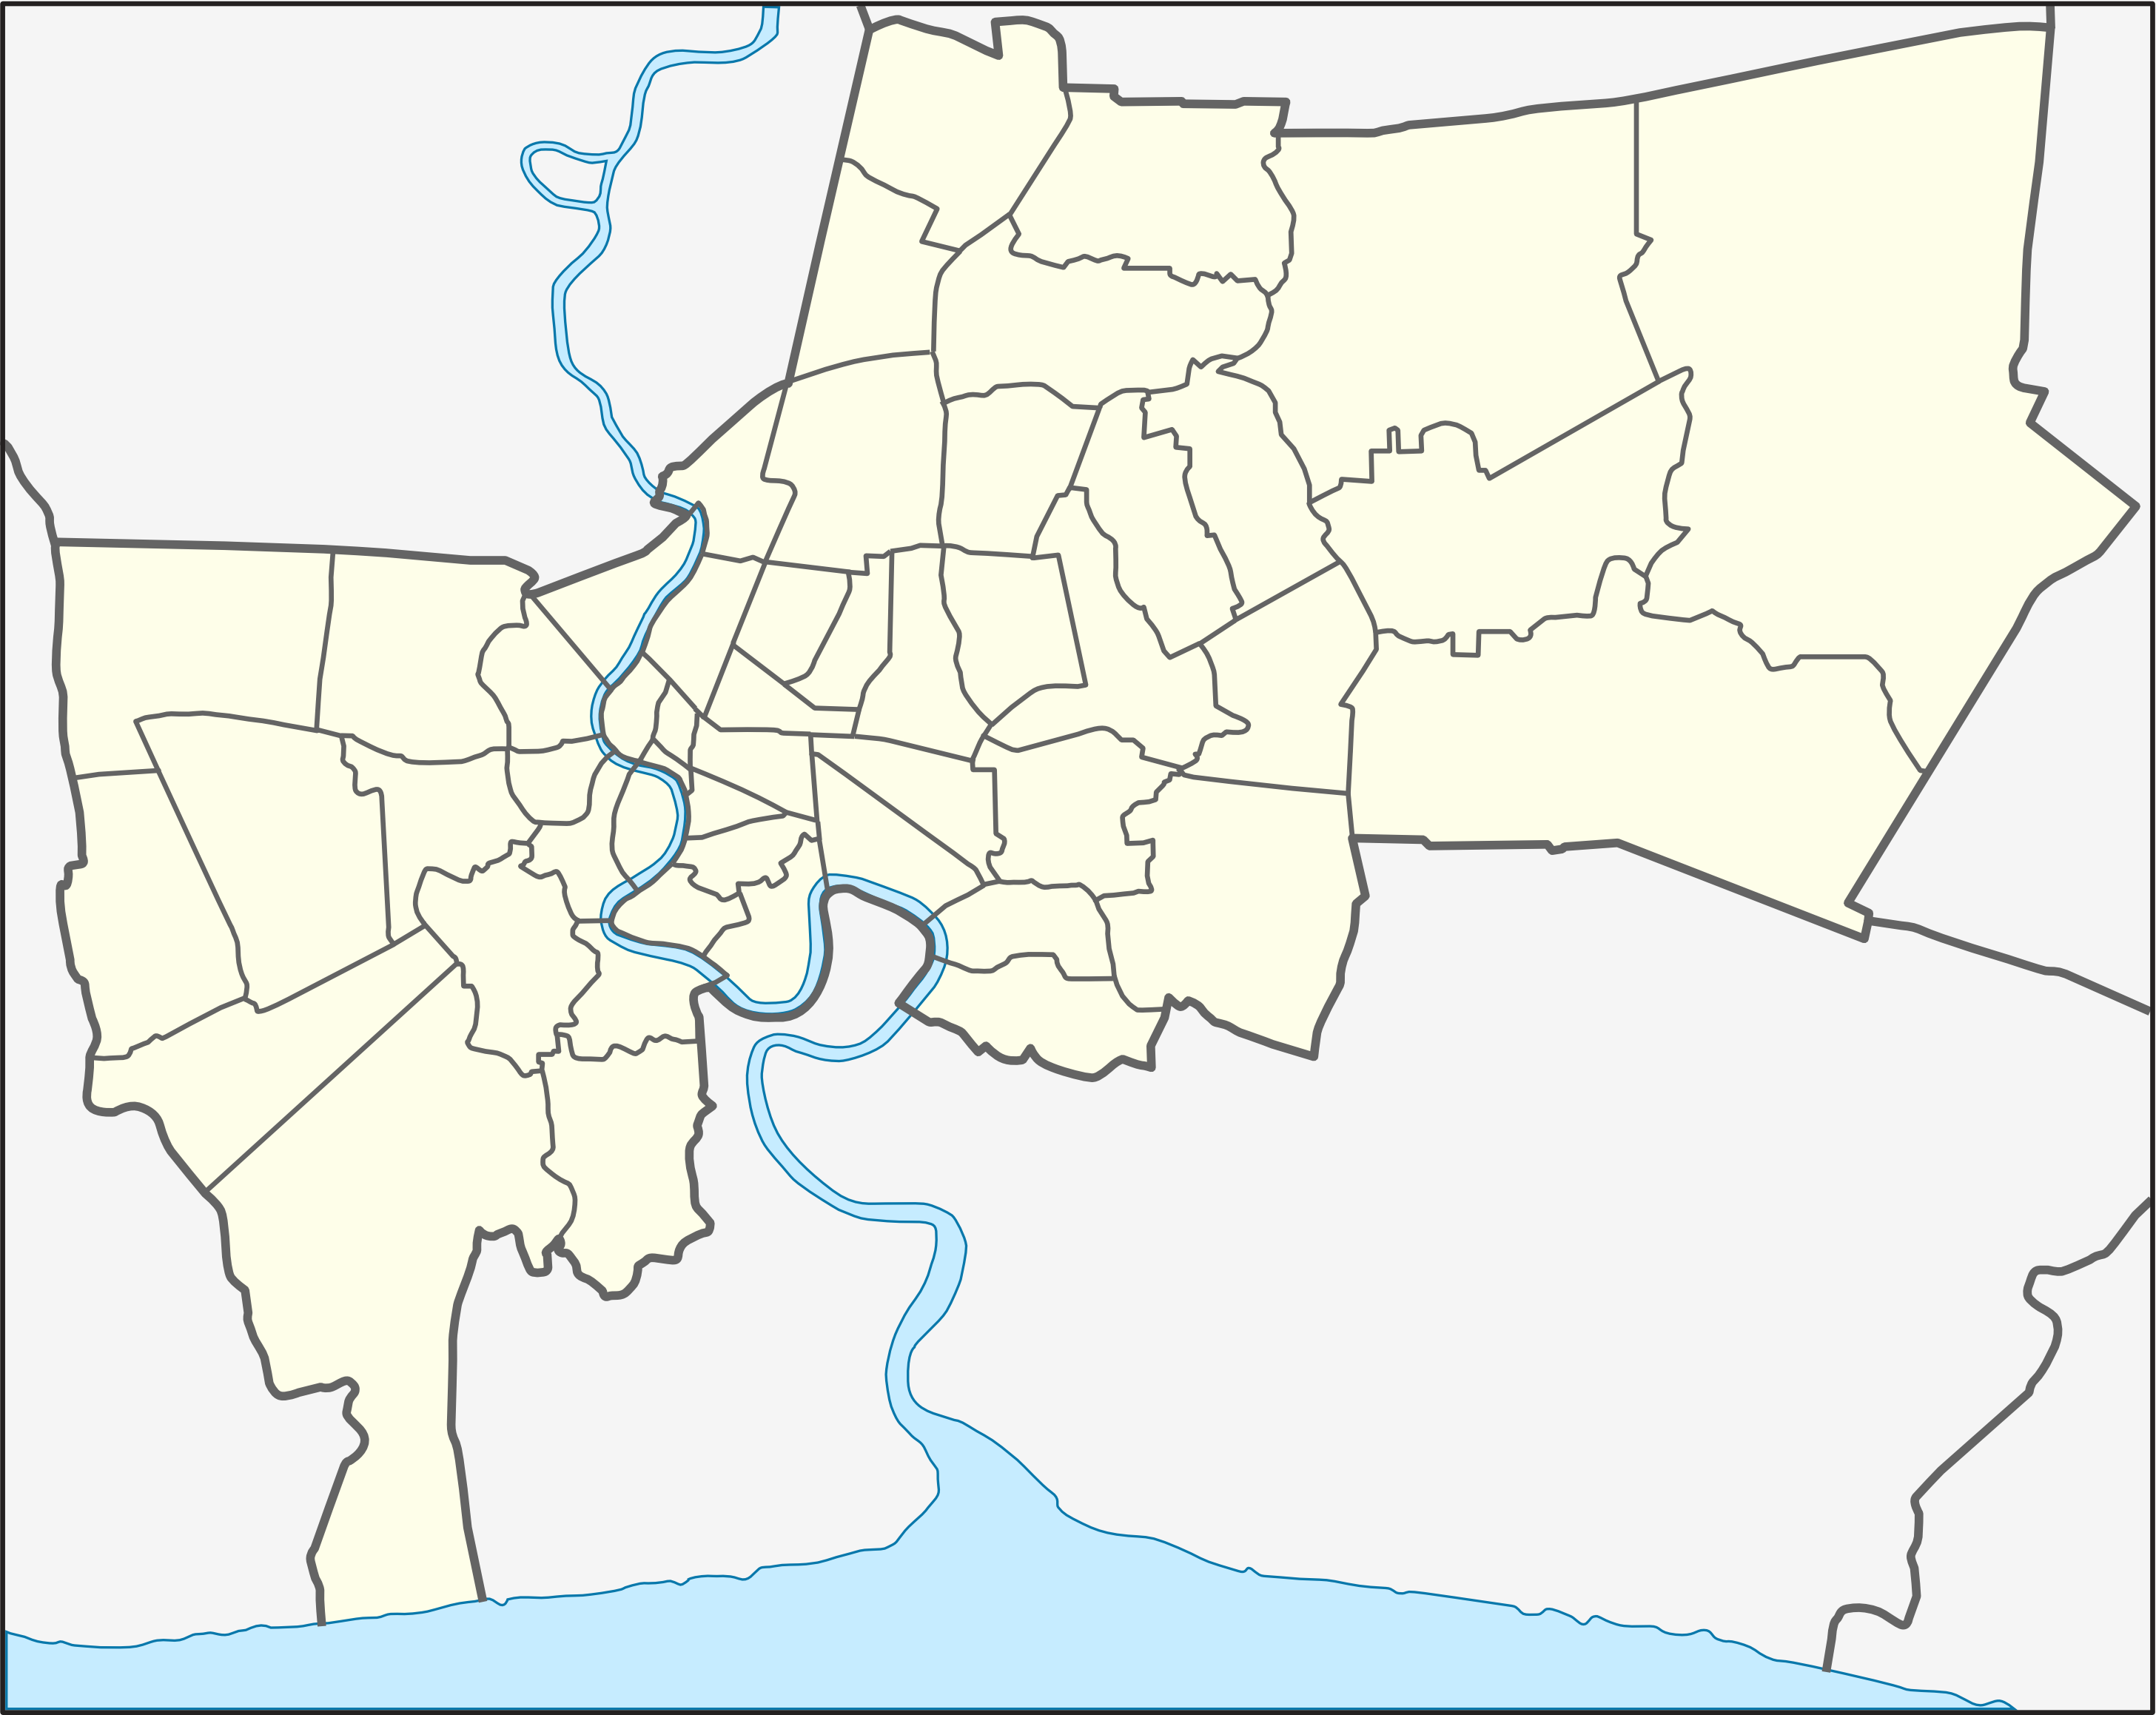 FileThailand Bangkok Location Mappng Wikimedia Commons - Thailand blank map